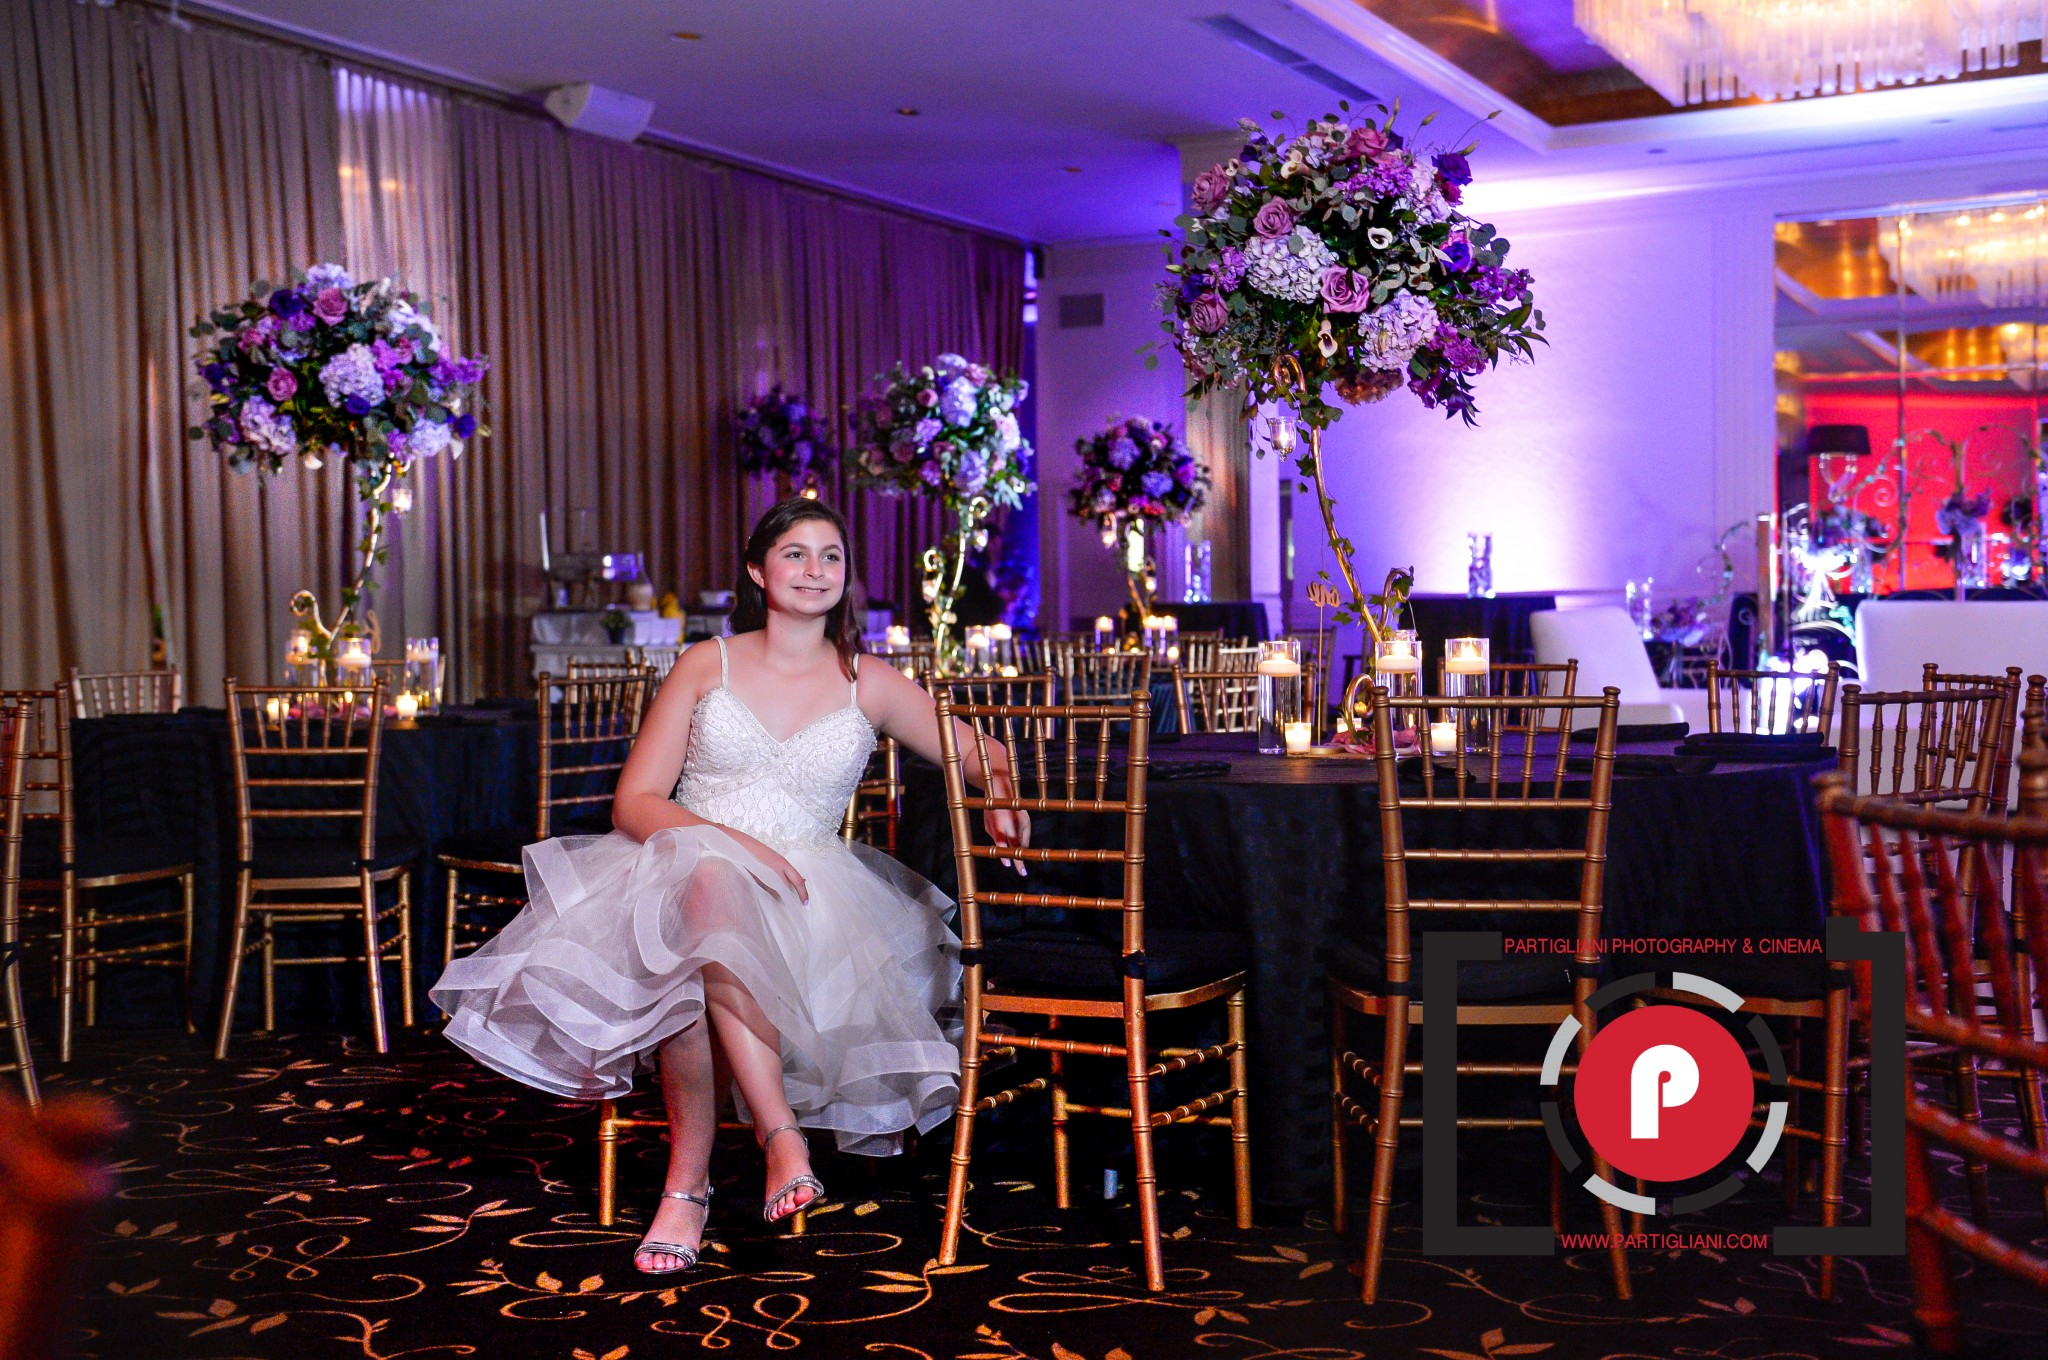 SARA PEARL ADLER BAT MITZVAH BY MONIK PARTIGLIANI, TEMPLE SOLEL, DALSIMER ATLAS FLORAL & EVENTS DECORATORS, PURE ENERGY ENTERTAINMENT, MC ALBERTO. ARTISAN FOODS